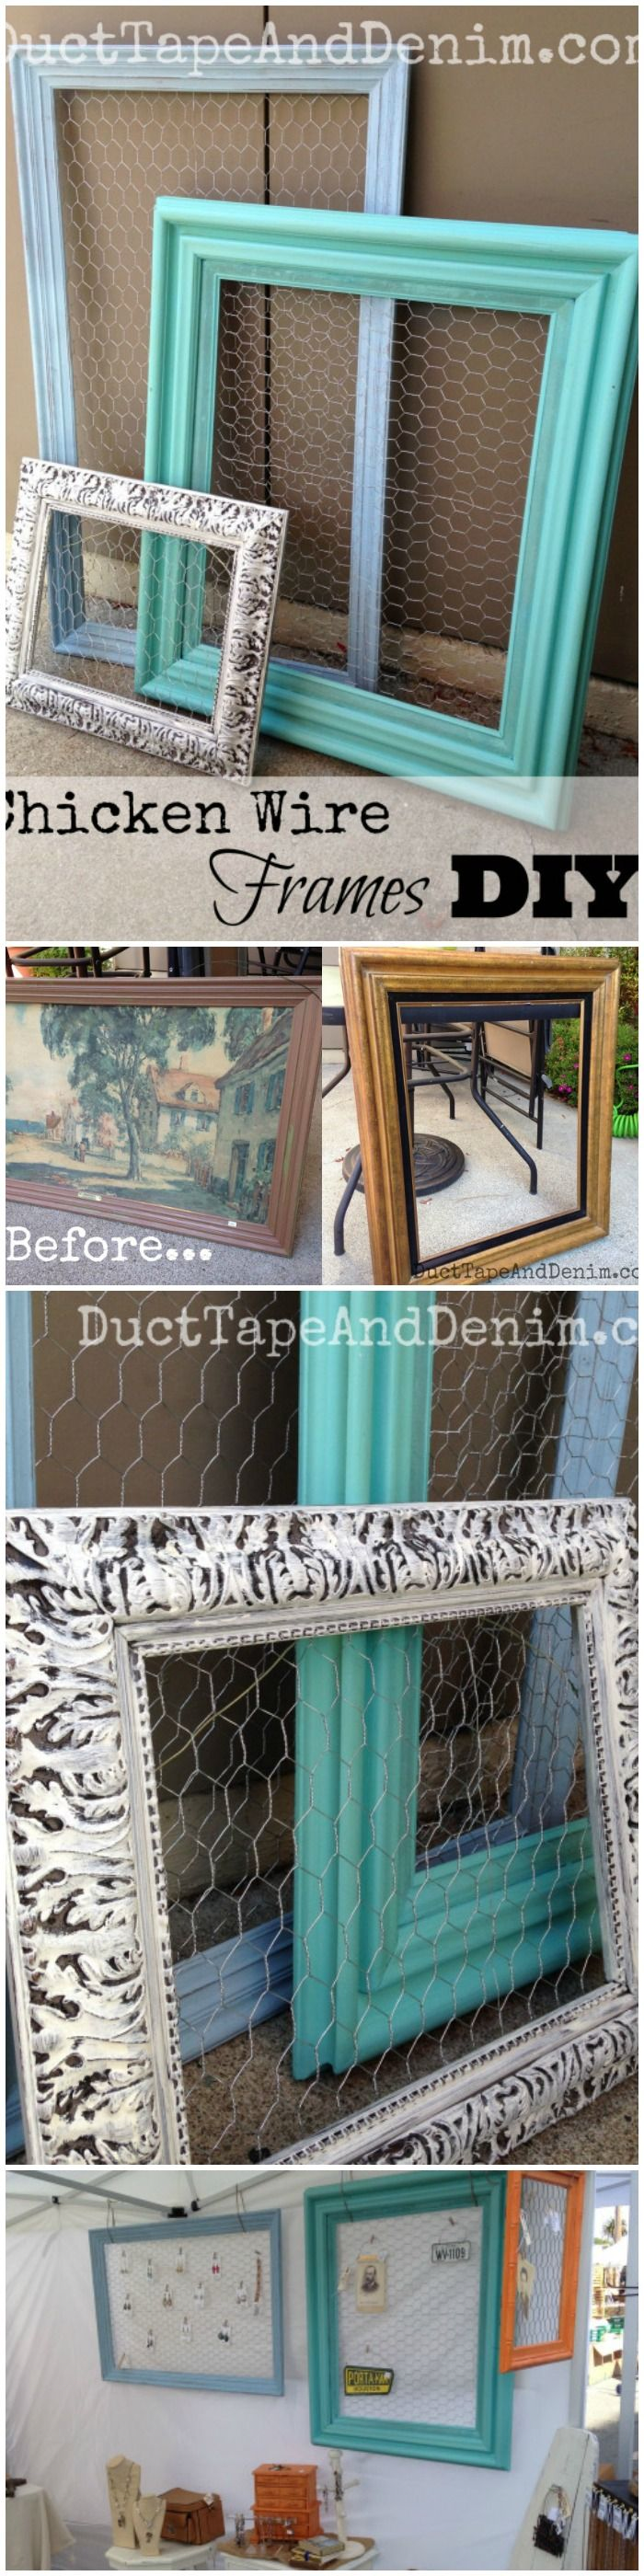 I love finding old vintage frames at thrift stores and garage sales, painting them, adding chicken wire, and using them to display earrings and other jewelry in my flea market booths.  Great for organizing jewelry in your bedroom, bathroom, closet, or dressing room, too.  | DuctTapeAndDenim.com